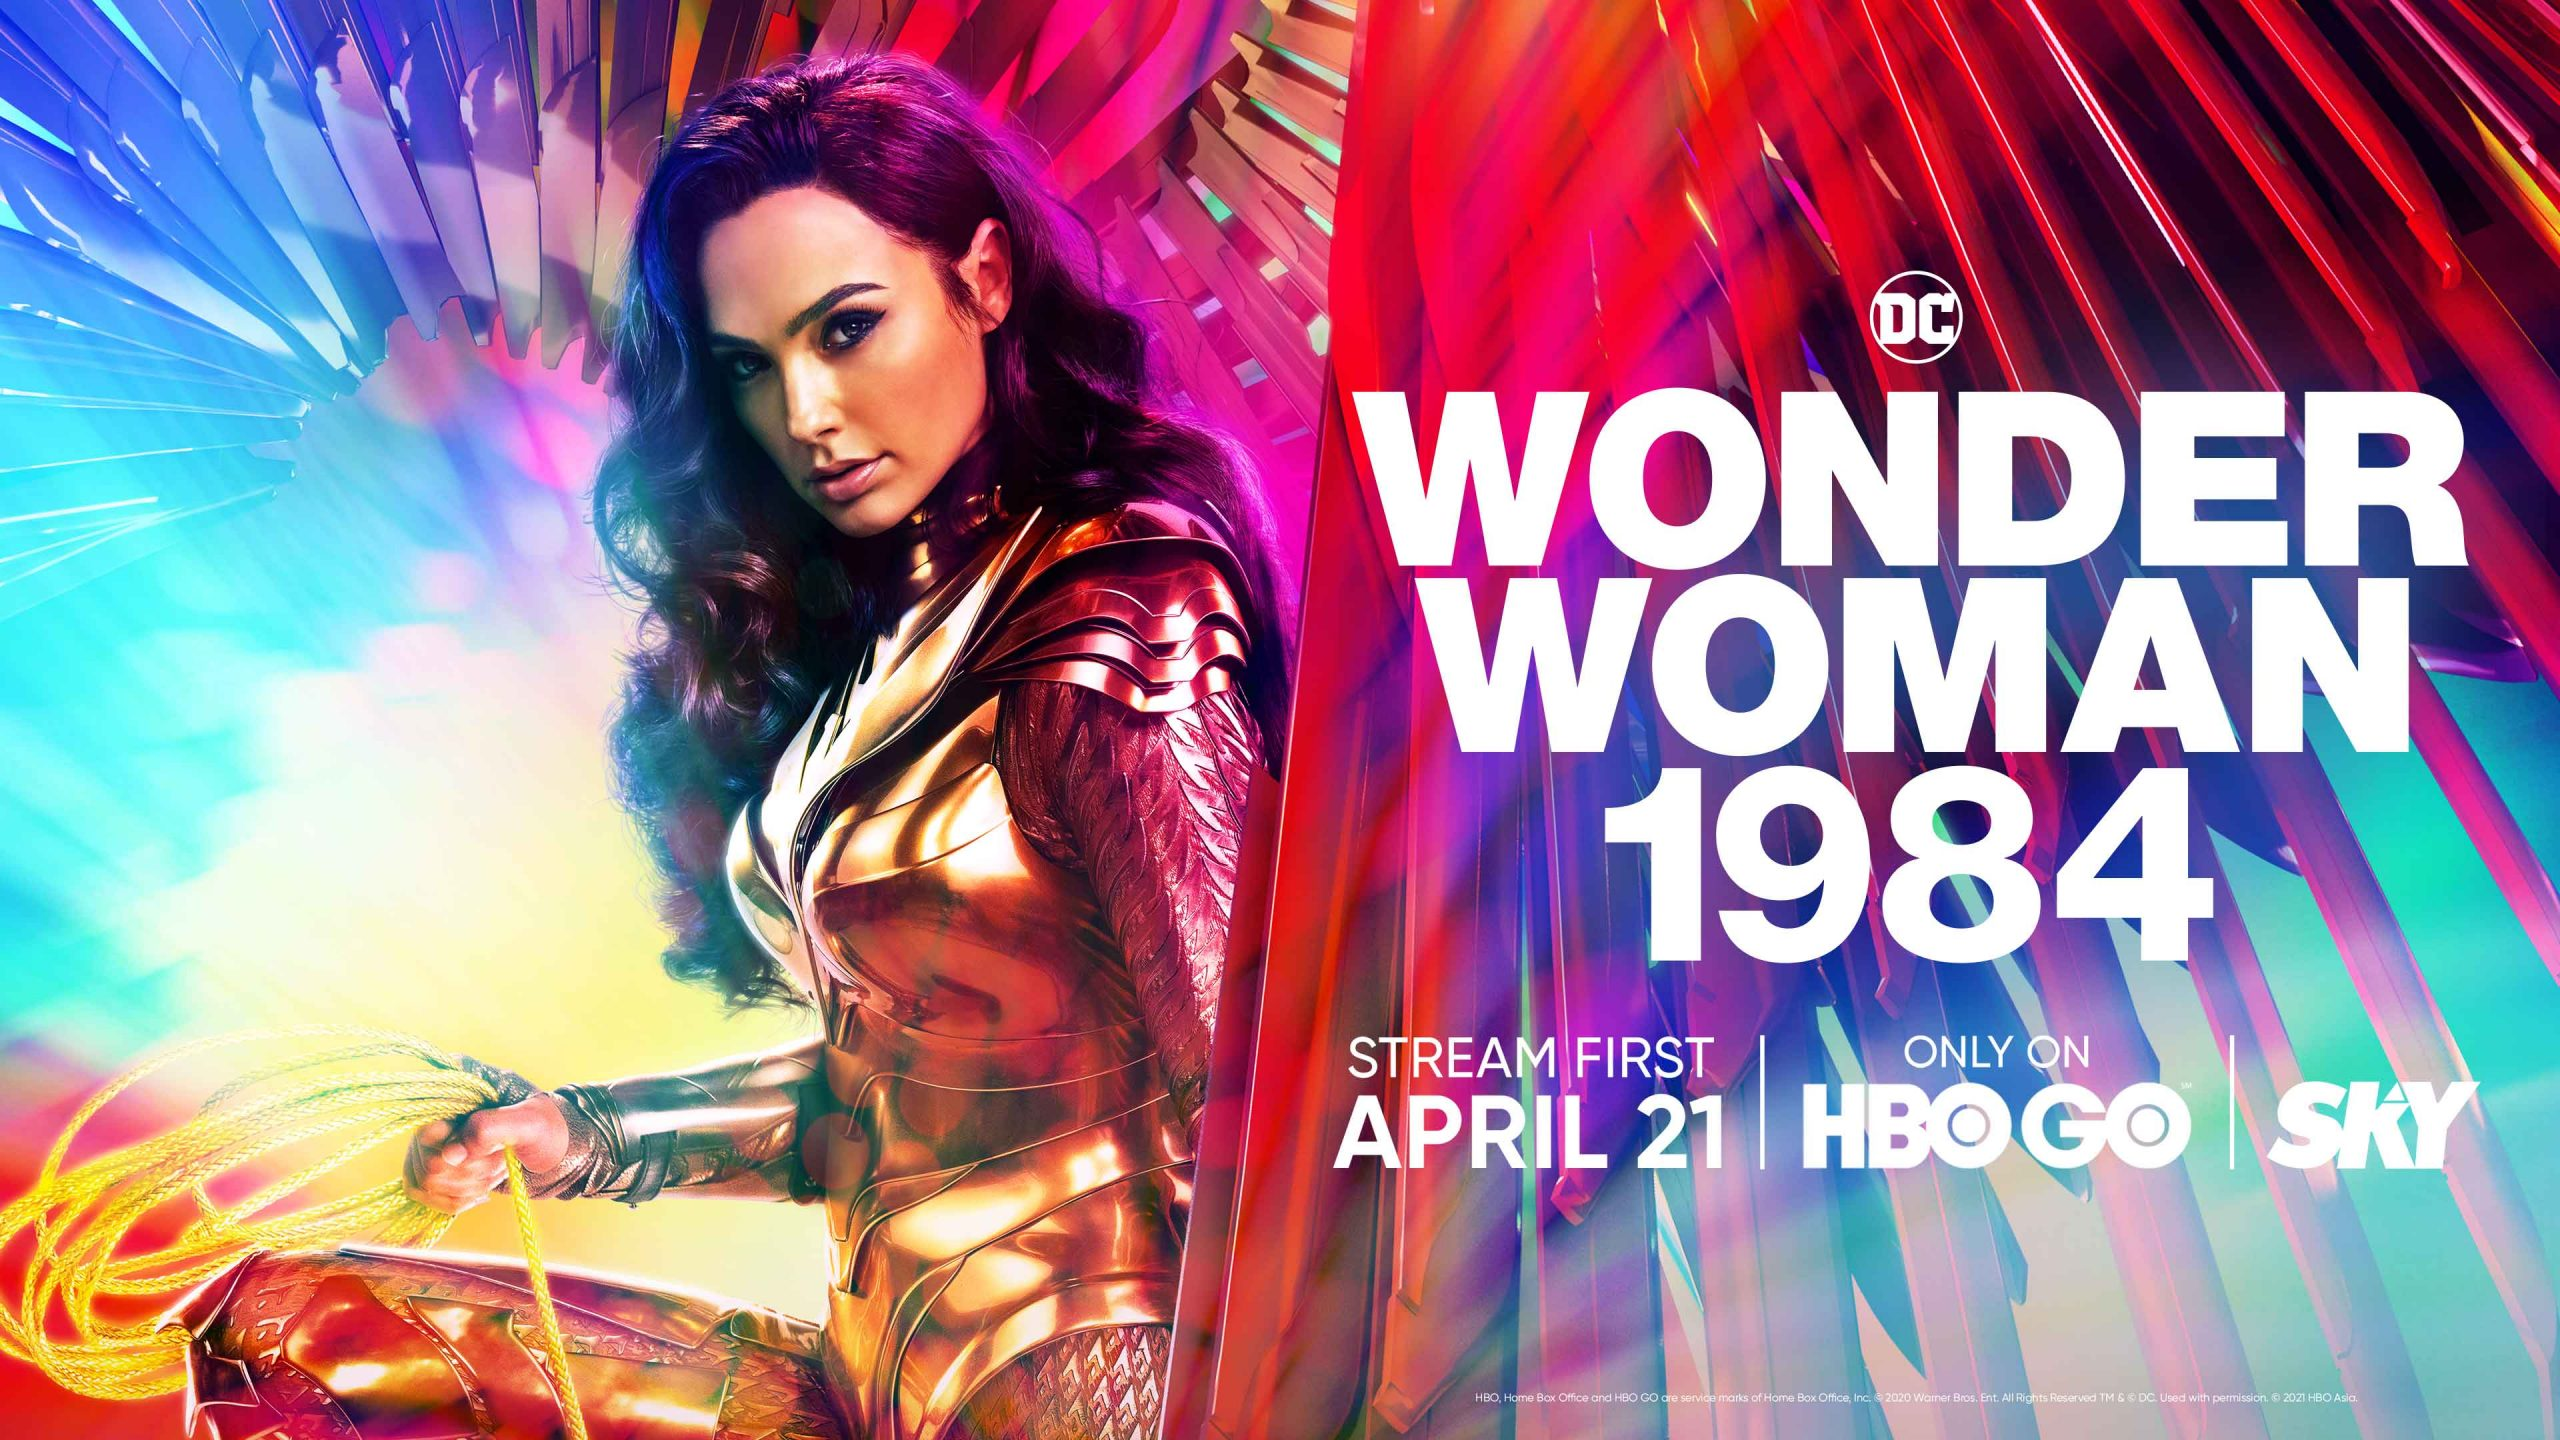 ICYMI: 'Wonder Woman 1984' Starts Streaming on HBO GO This April 21!